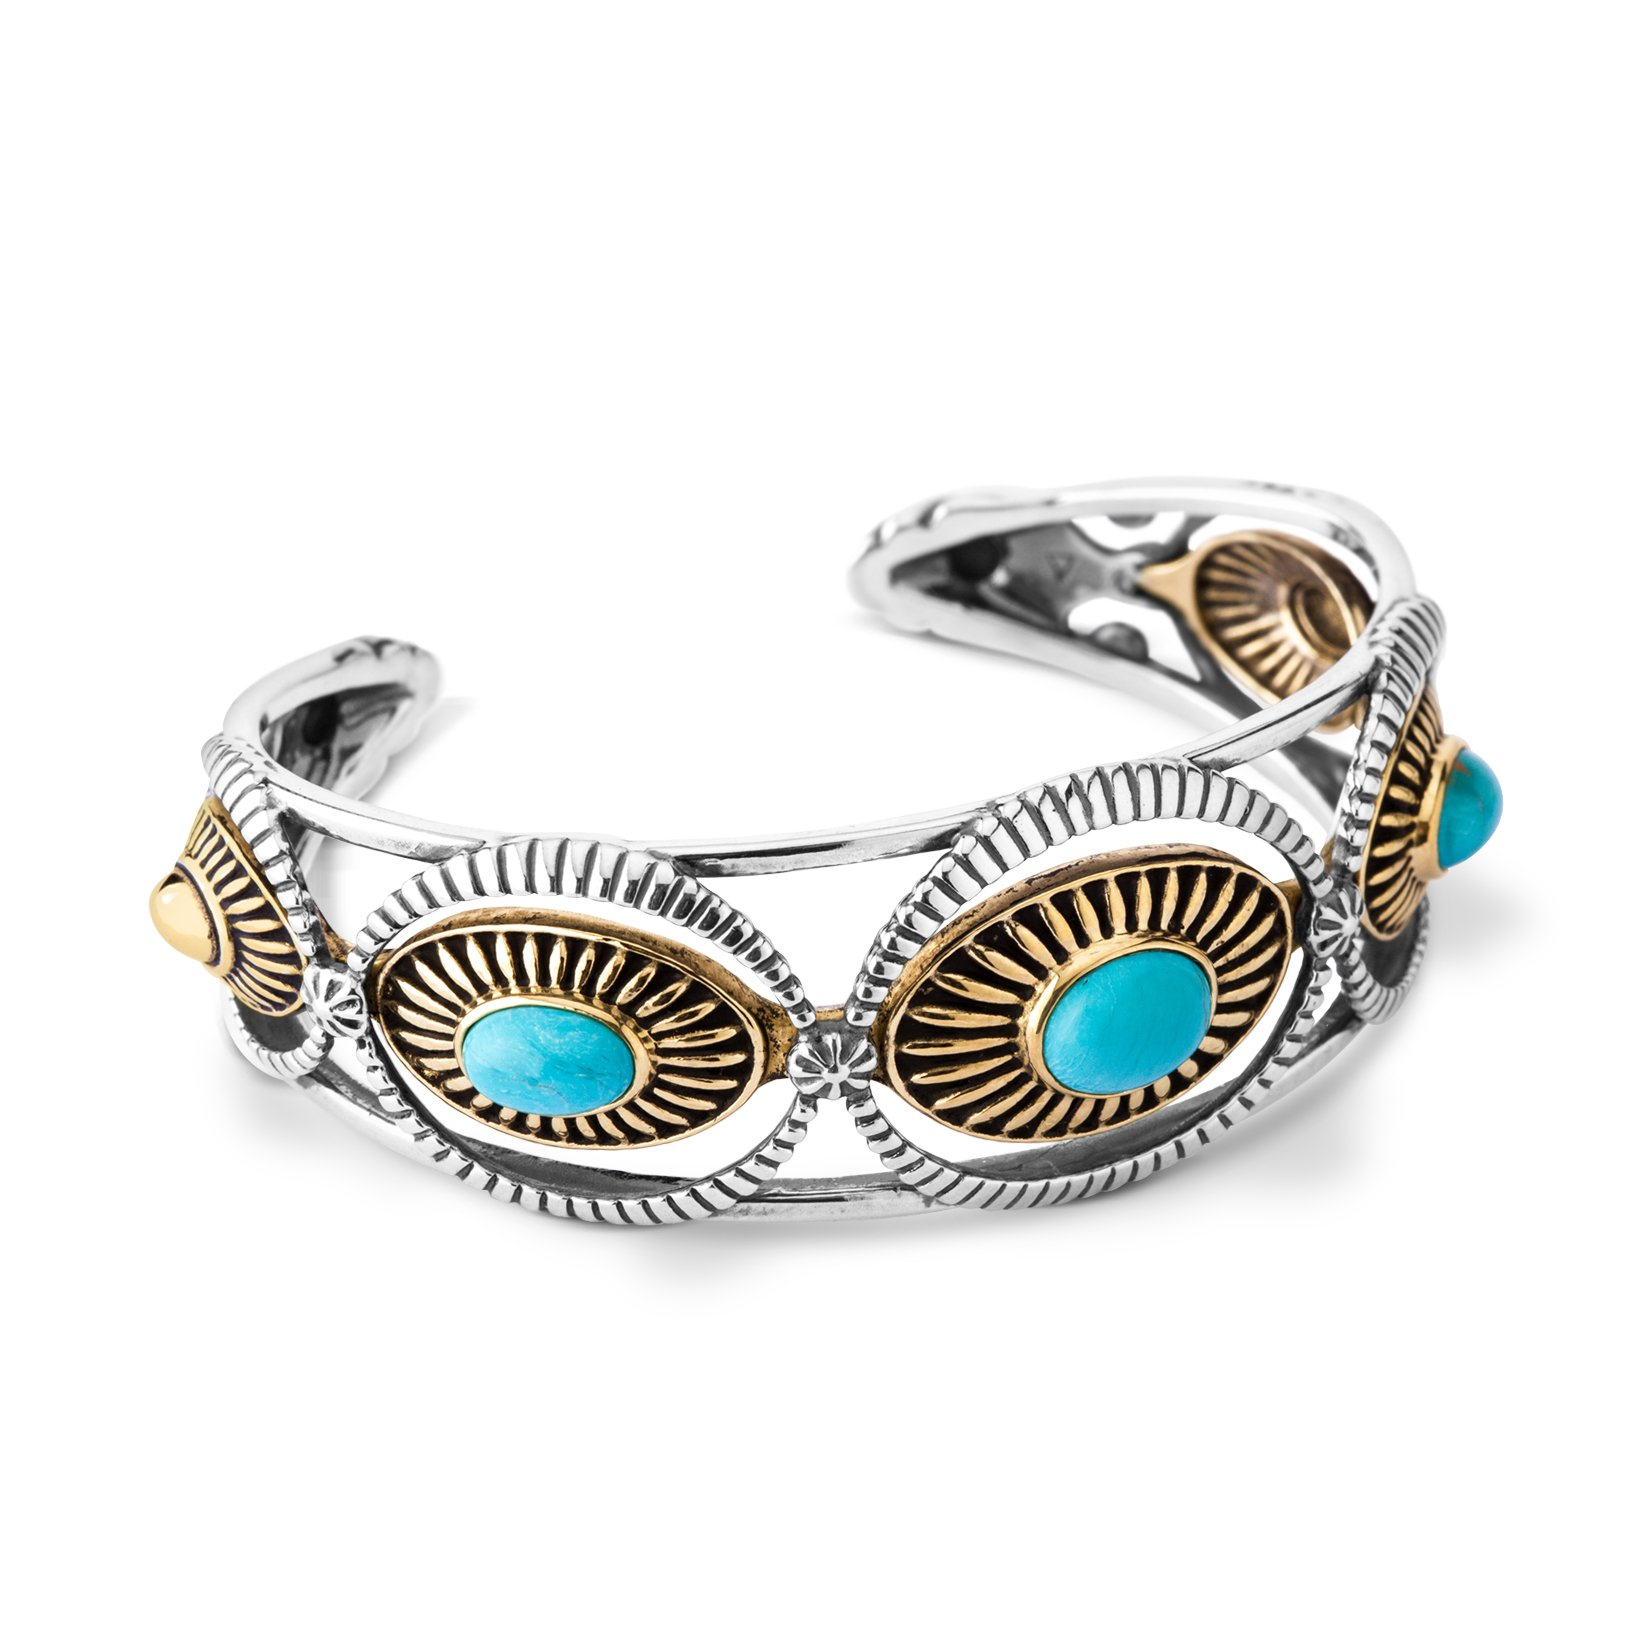 Fritz Casuse Sterling Silver Mixed Metal Turquoise Three-stone Cuff Bracelet, Small